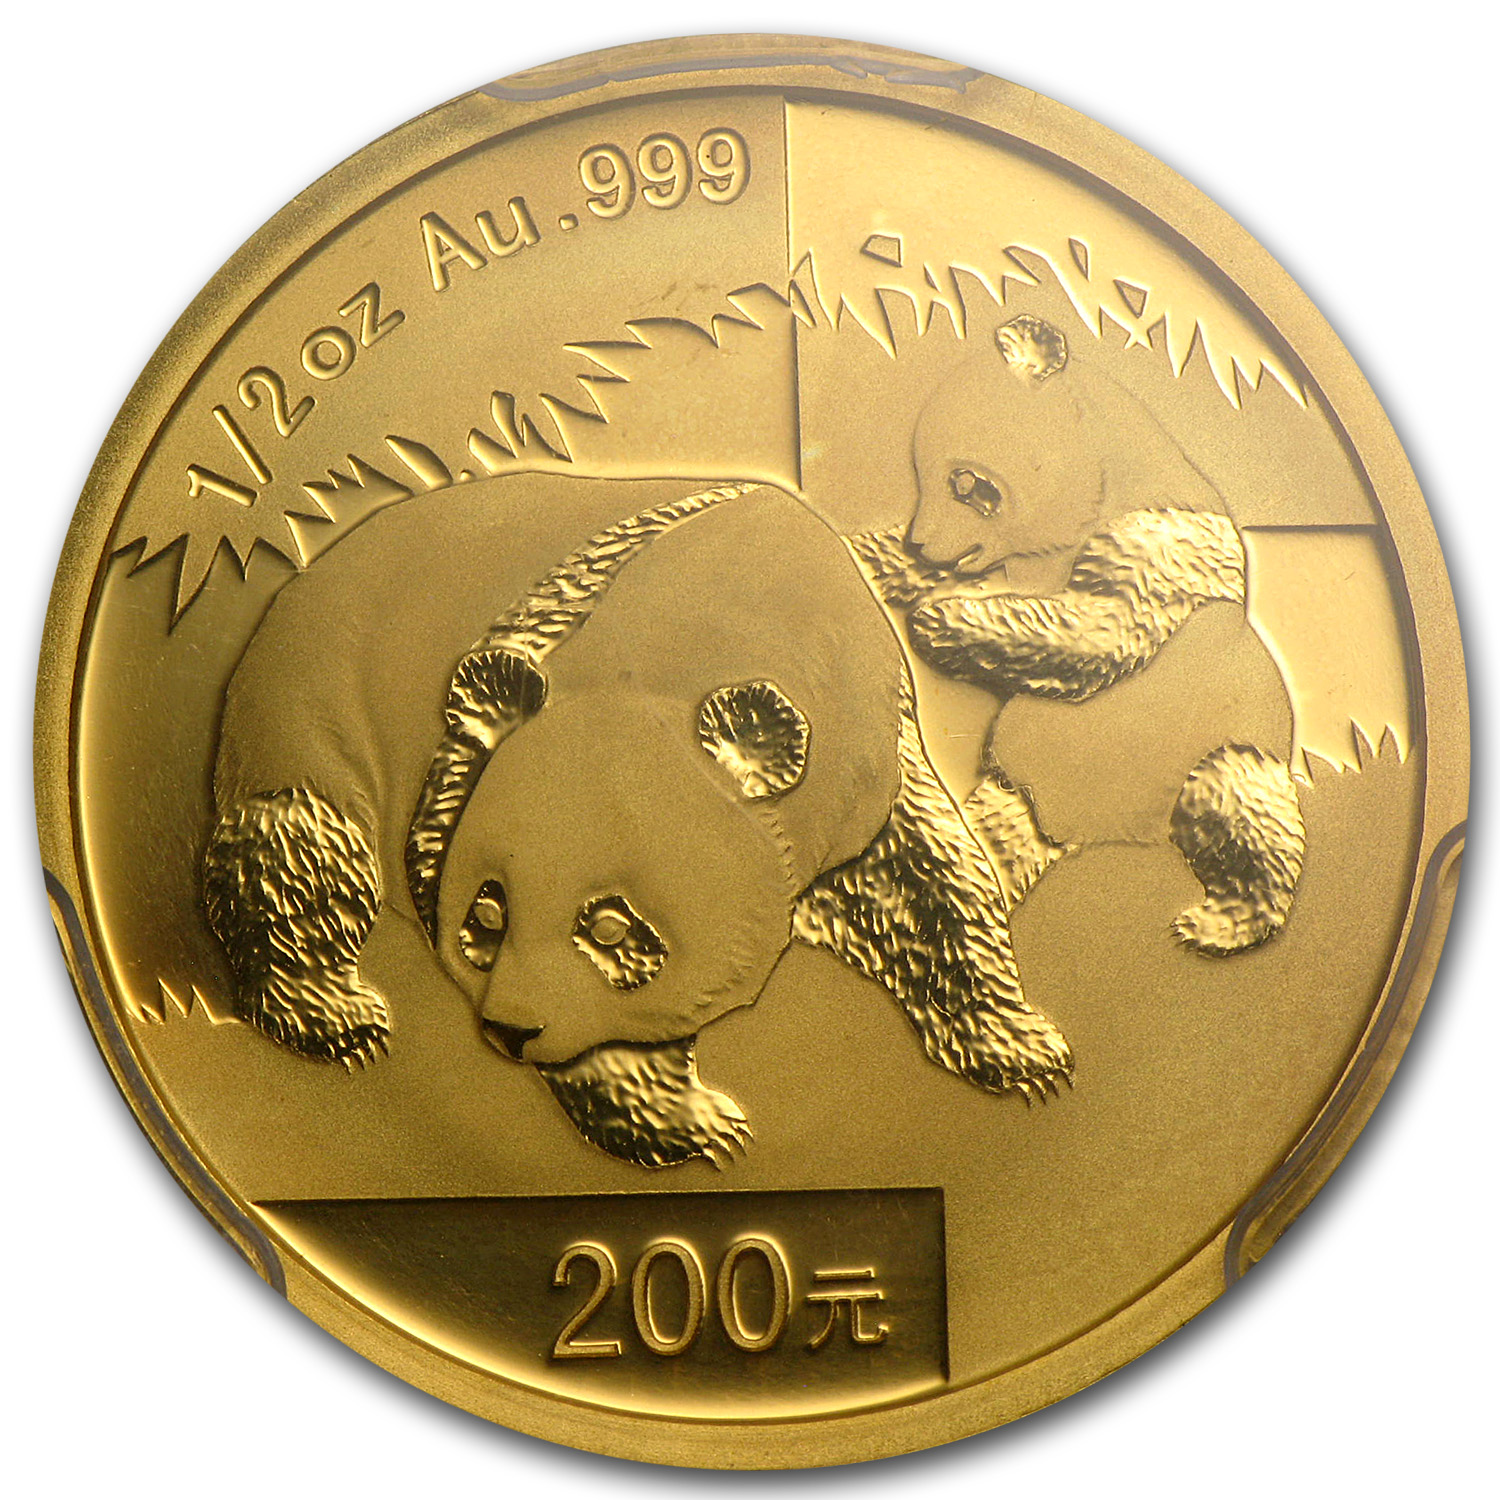 2008 (1/2 oz) Gold Chinese Panda MS-69 PCGS